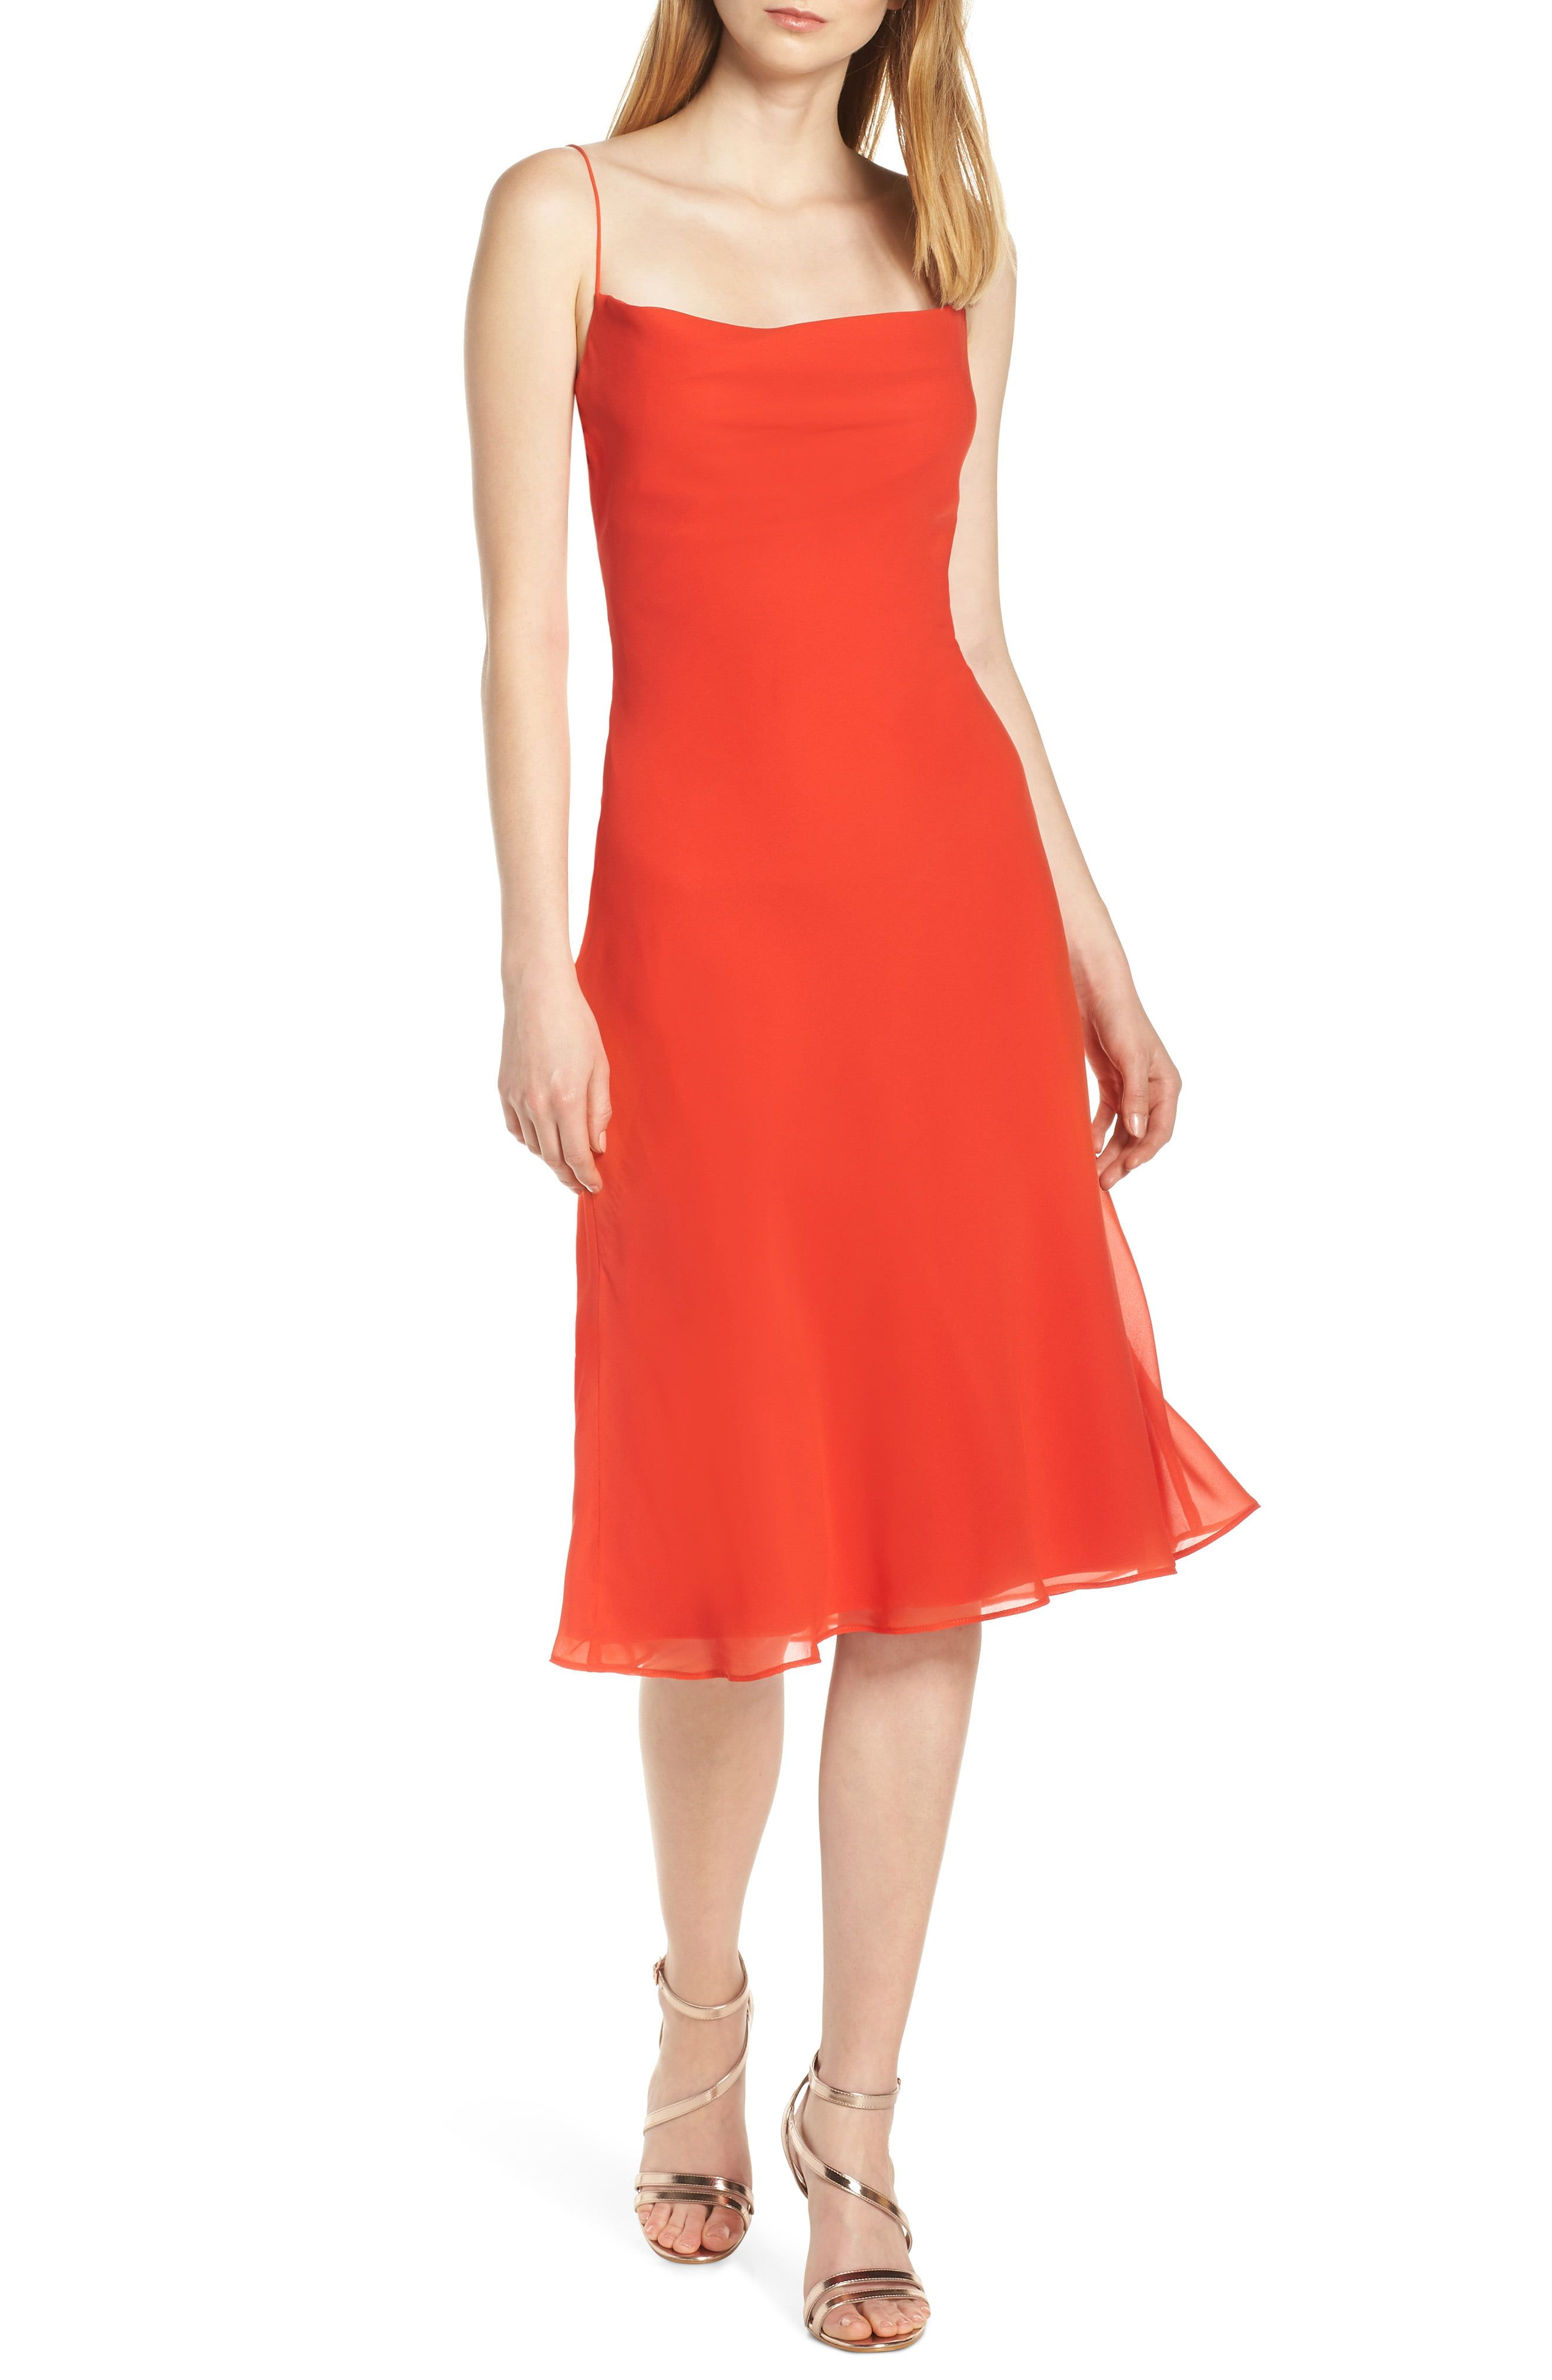 Women S Finders Keepers Nostalgia Back Cutout Slipdress Size X Small Red Fashion Clothes Women Clothes For Women Wedding Guest Dress Trends